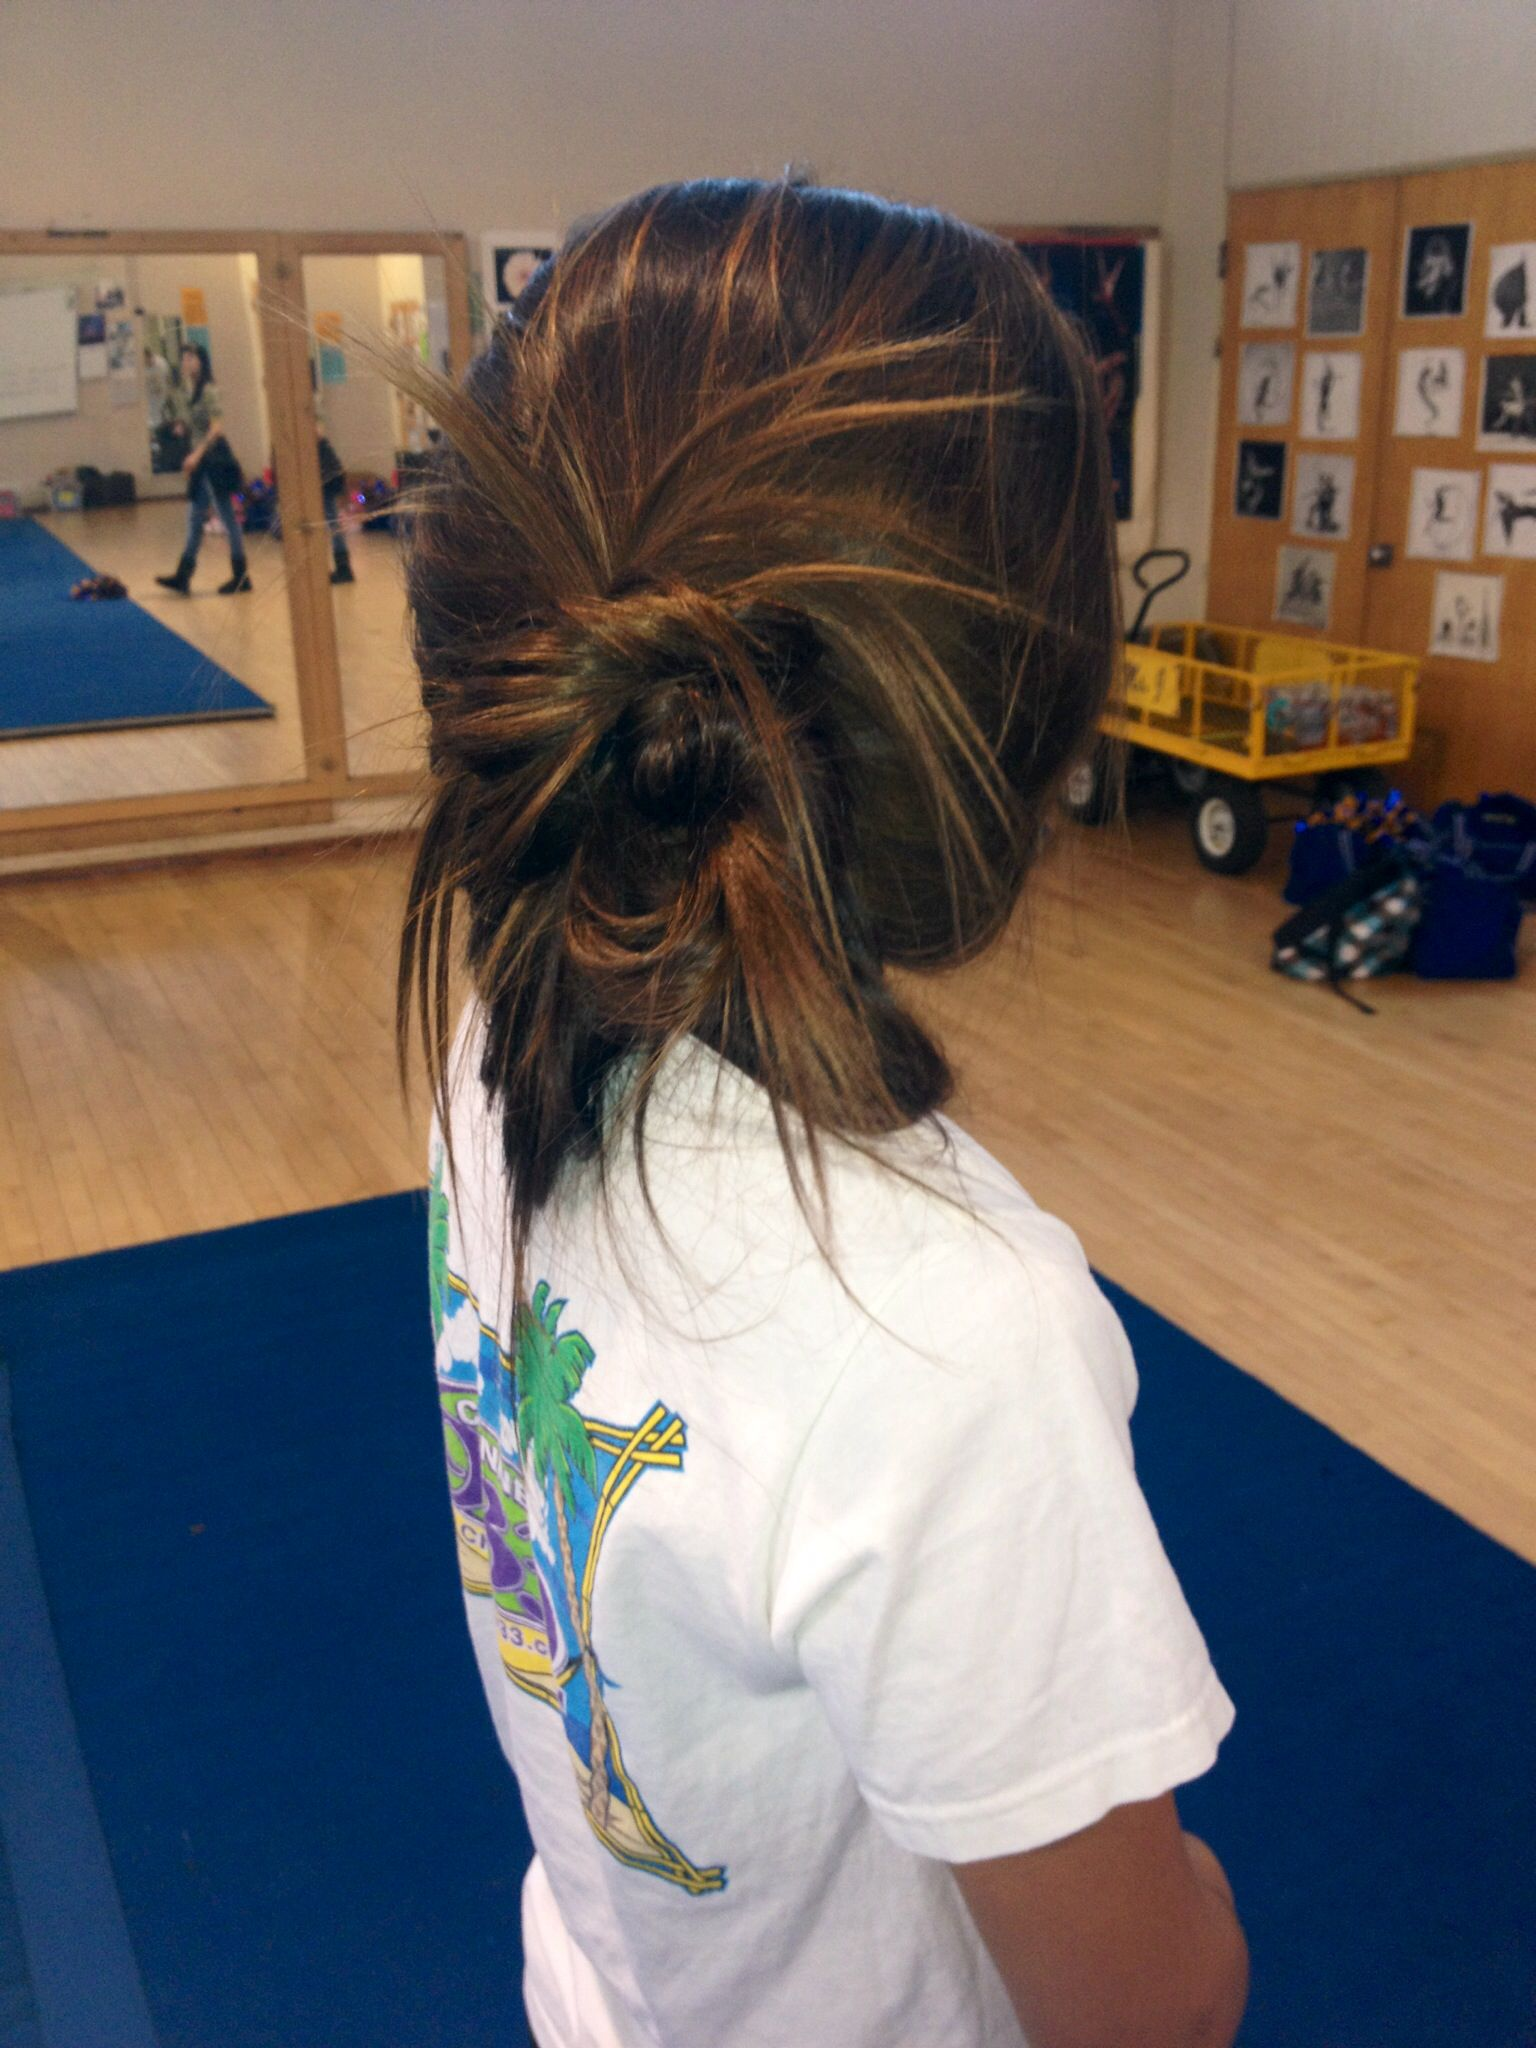 perfect hair for cheer practice | hair | pinterest | cheer